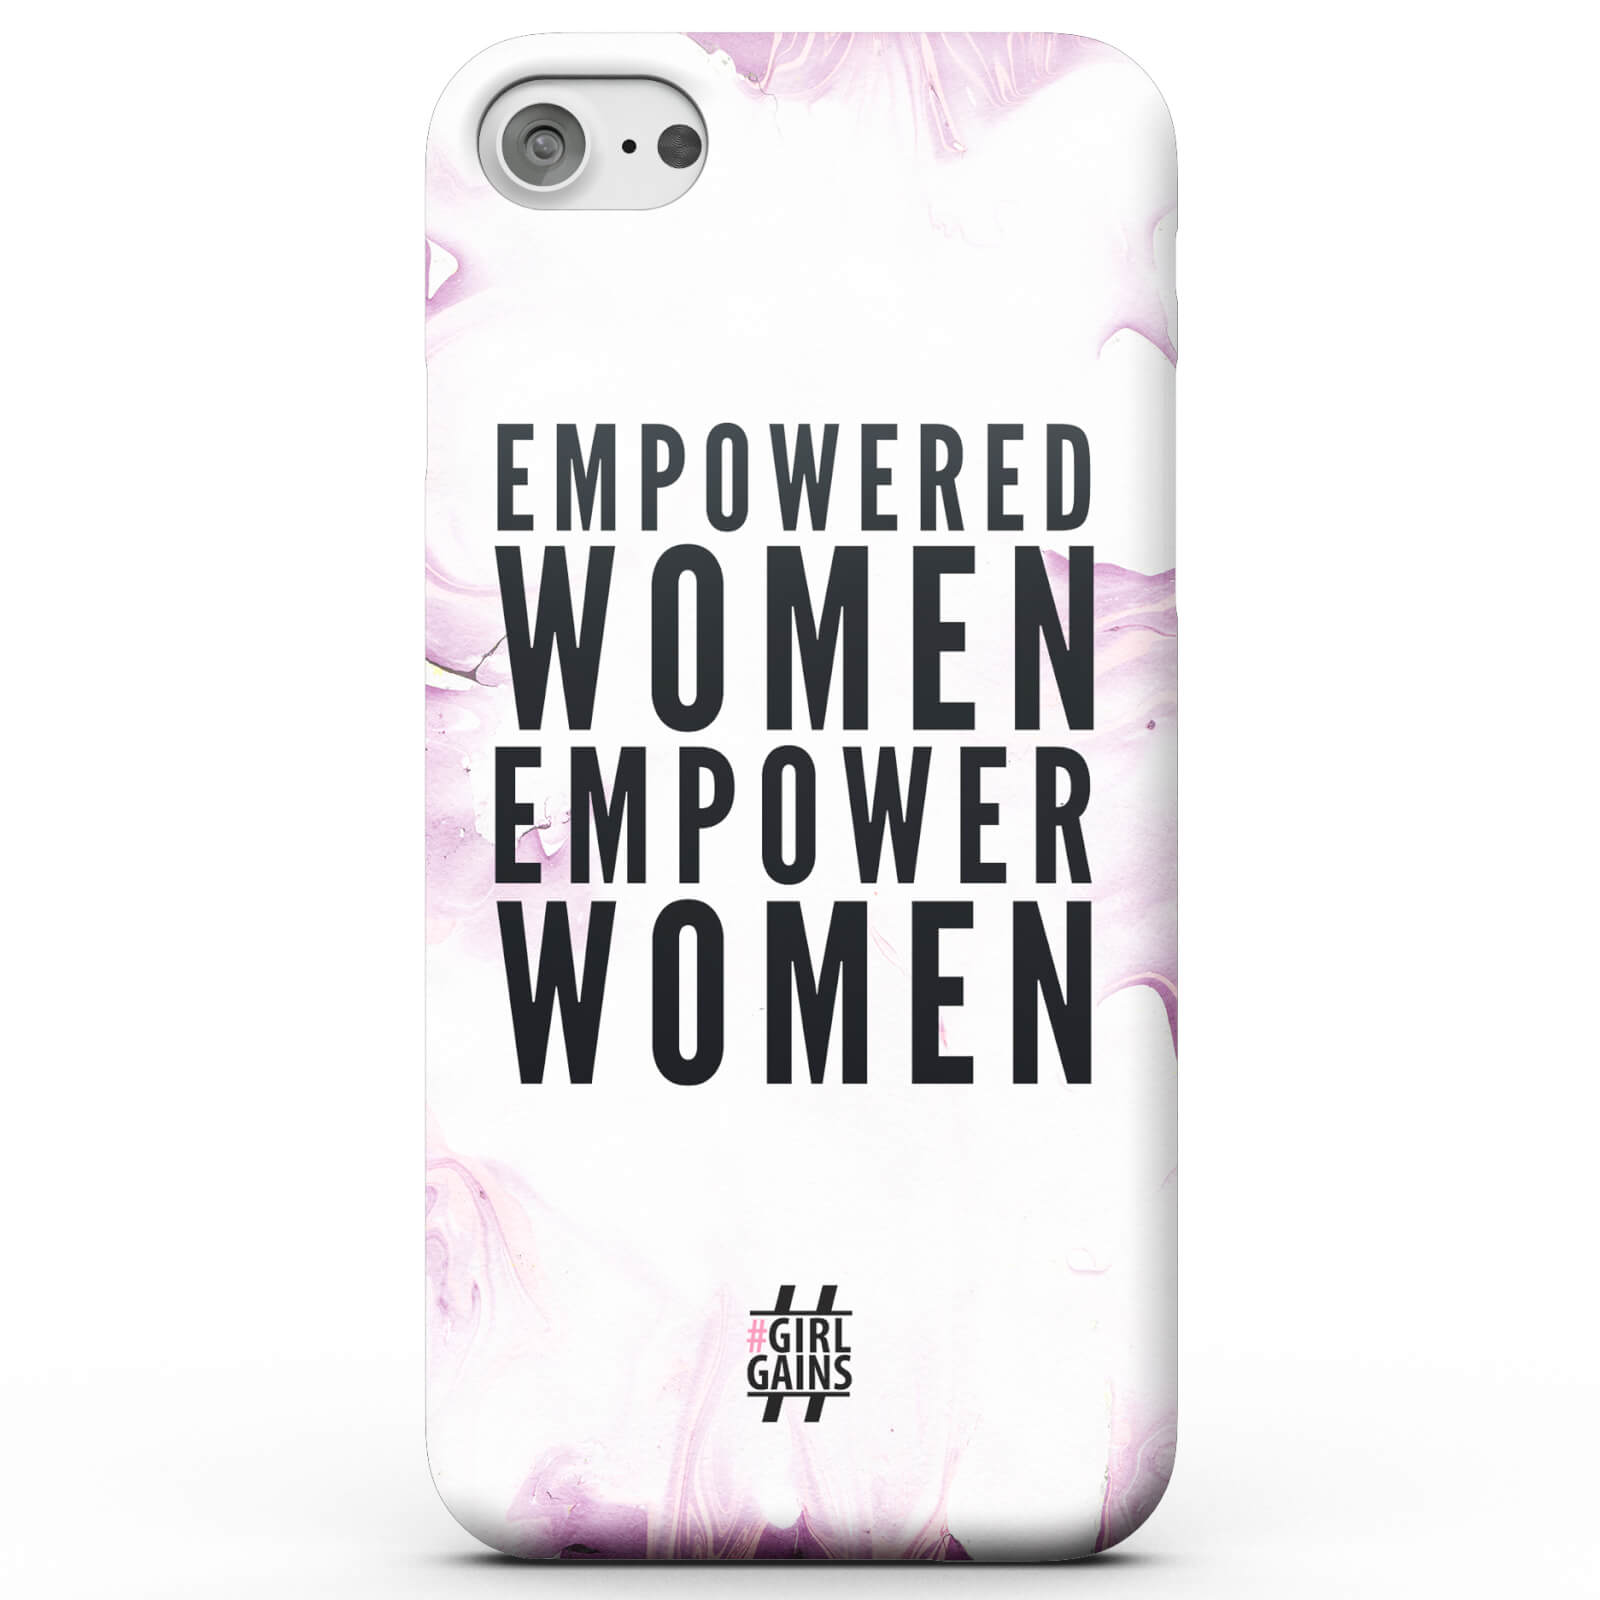 Girl Gains Empowered Women Empower Women Phone Case